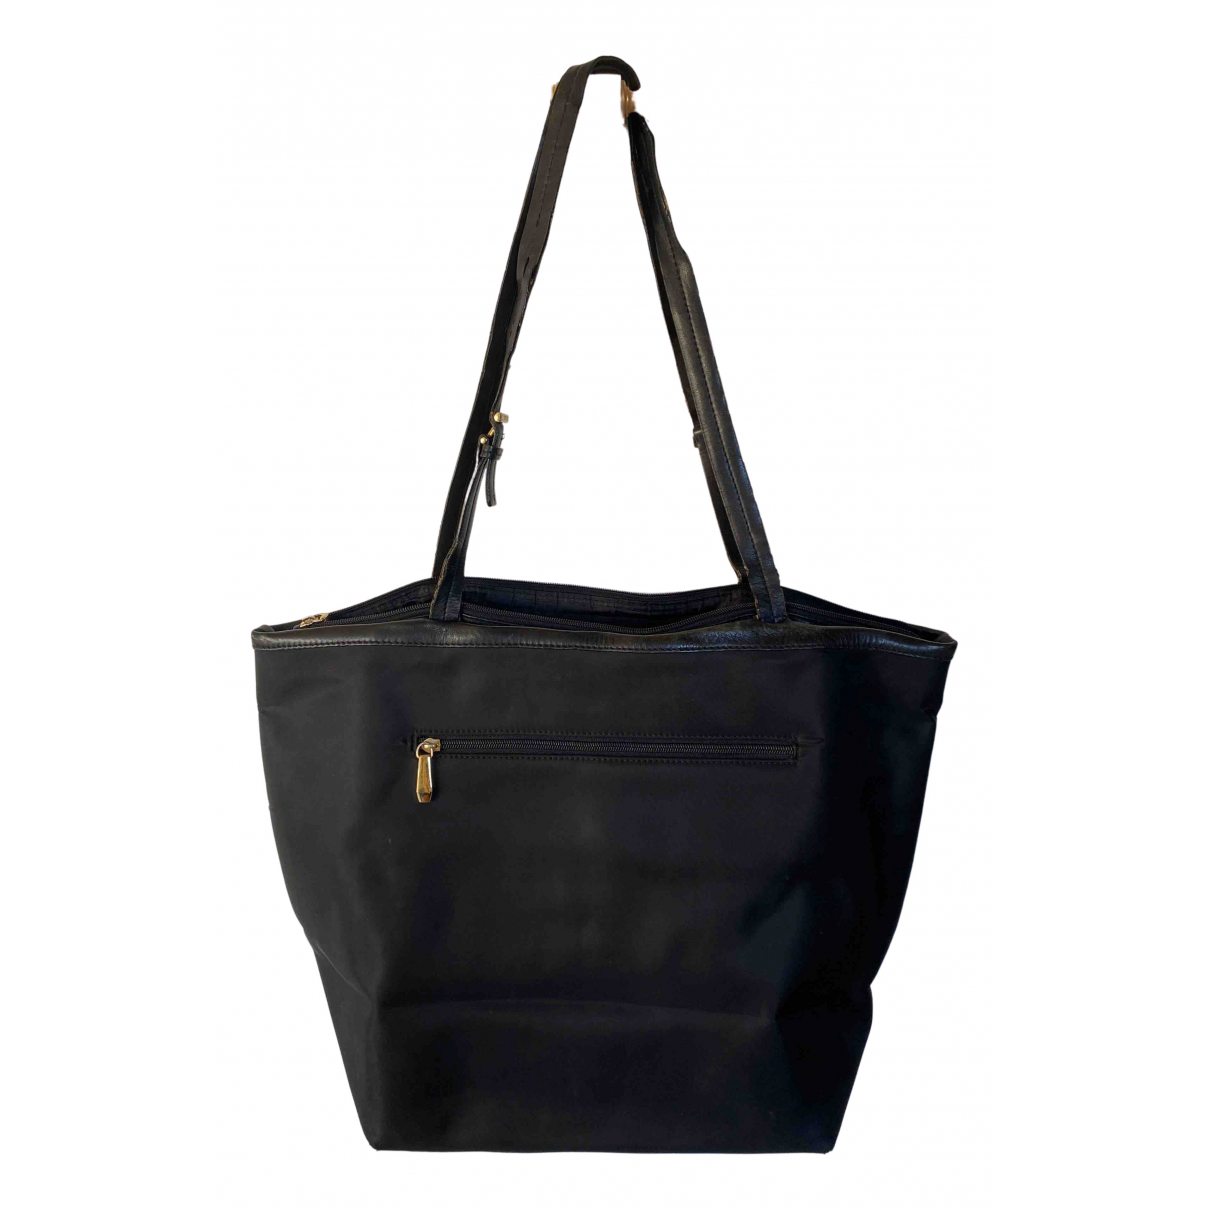 Genny \N Black handbag for Women \N